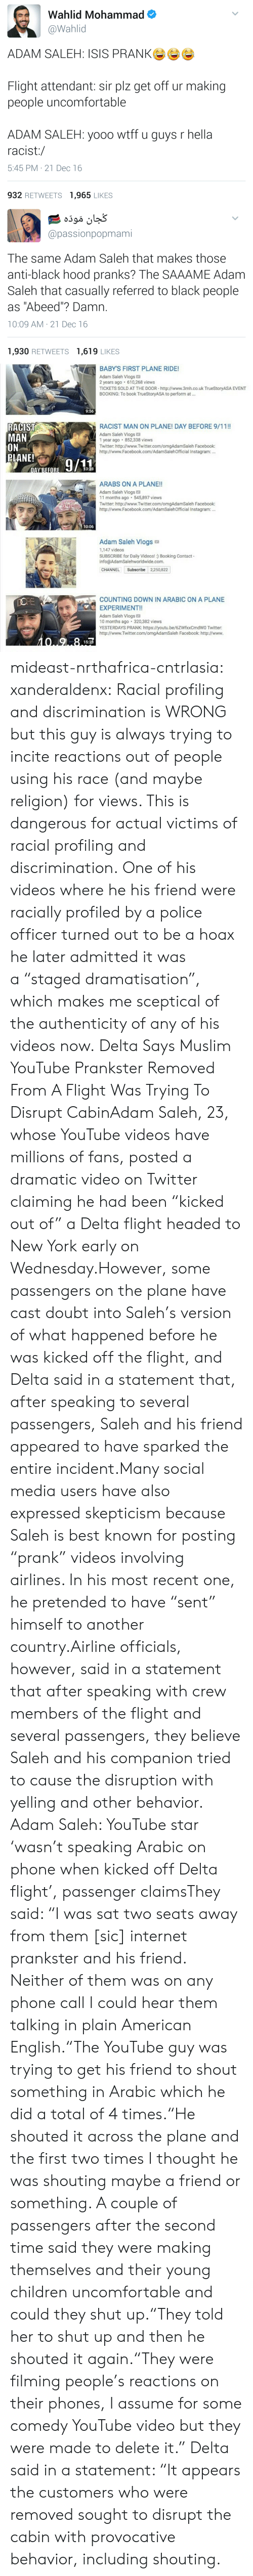 """Youtube Star: Wahlid Mohammad  @Wahlid  ADAM SALEH: ISIS PRANKe  Flight attendant: sir plz get off ur making  people uncomfortable  ADAM SALEH: yooo wtff u guys r hella  racist:/  5:45 PM 21 Dec 16  932 RETWEETS 1,965 LIKES   @passionpopmami  The same Adam Saleh that makes those  anti-black hood pranks? The SAAAME Adam  Saleh that casually referred to black people  as """"Abeed""""? Damn.  10:09 AM- 21 Dec 16  1,930 RETWEETS 1,619 LIKES   BABYS FIRST PLANE RIDE!  Adam Saleh Vlogs  2 years ago 610,268 views  TICKETS SOLD AT THE DOOR http://www.3mh.co.uk TrueStoryASA EVENT  BOOKING: To book TrueStoryASA to perform at...  9:56  RACIST  MAN  RACIST MAN ON PLANE! DAY BEFORE 9/11!  Adam Saleh Vlogs  1 year ago 852,338 views  Twitter: http://www.Twitter.com/omgAdamSaleh Facebook:  http://www.Facebook.com/AdamSalehOfficial Instagram:.  PLANE0/11  13:28  ARABS ON A PLANE!!  Adam Saleh Vlogs  Twitter: http://www.Twitter.com/omgAdamSaleh Facebook  11 months ago 545,897 views  http://www.Facebook.com/AdamSalehOfficial Instagram  10:06  Adam Saleh Vlogs a  1.147 videos  SUBSCRIBE for Daily Videos! ) Booking Contact  info@AdamSalehworldwide.com.  CHANNEL Subscribe 2,250,822  COUNTING DOWN IN ARABIC ON A PLANE  EXPERIMENT!!  Adam Saleh Vlogs  10 months ago 320,382 views  YESTERDAYS PRANK: https://youtu.be/6ZWfxxCmdW0 Twitter  http://www.Twitter.com/omgAdamSaleh Facebook: http://www  15:23 mideast-nrthafrica-cntrlasia:  xanderaldenx: Racial profiling and discrimination is WRONG but this guy is always trying to incite reactions out of people using his race (and maybe religion) for views. This is dangerous for actual victims of racial profiling and discrimination. One of his videos where he  his friend were racially profiled by a police officer turned out to be a hoax  he later admitted it was a""""staged dramatisation"""", which makes me sceptical of the authenticity of any of his videos now.  Delta Says Muslim YouTube Prankster Removed From A Flight Was Trying To Disrupt CabinAdam Saleh, 23, w"""